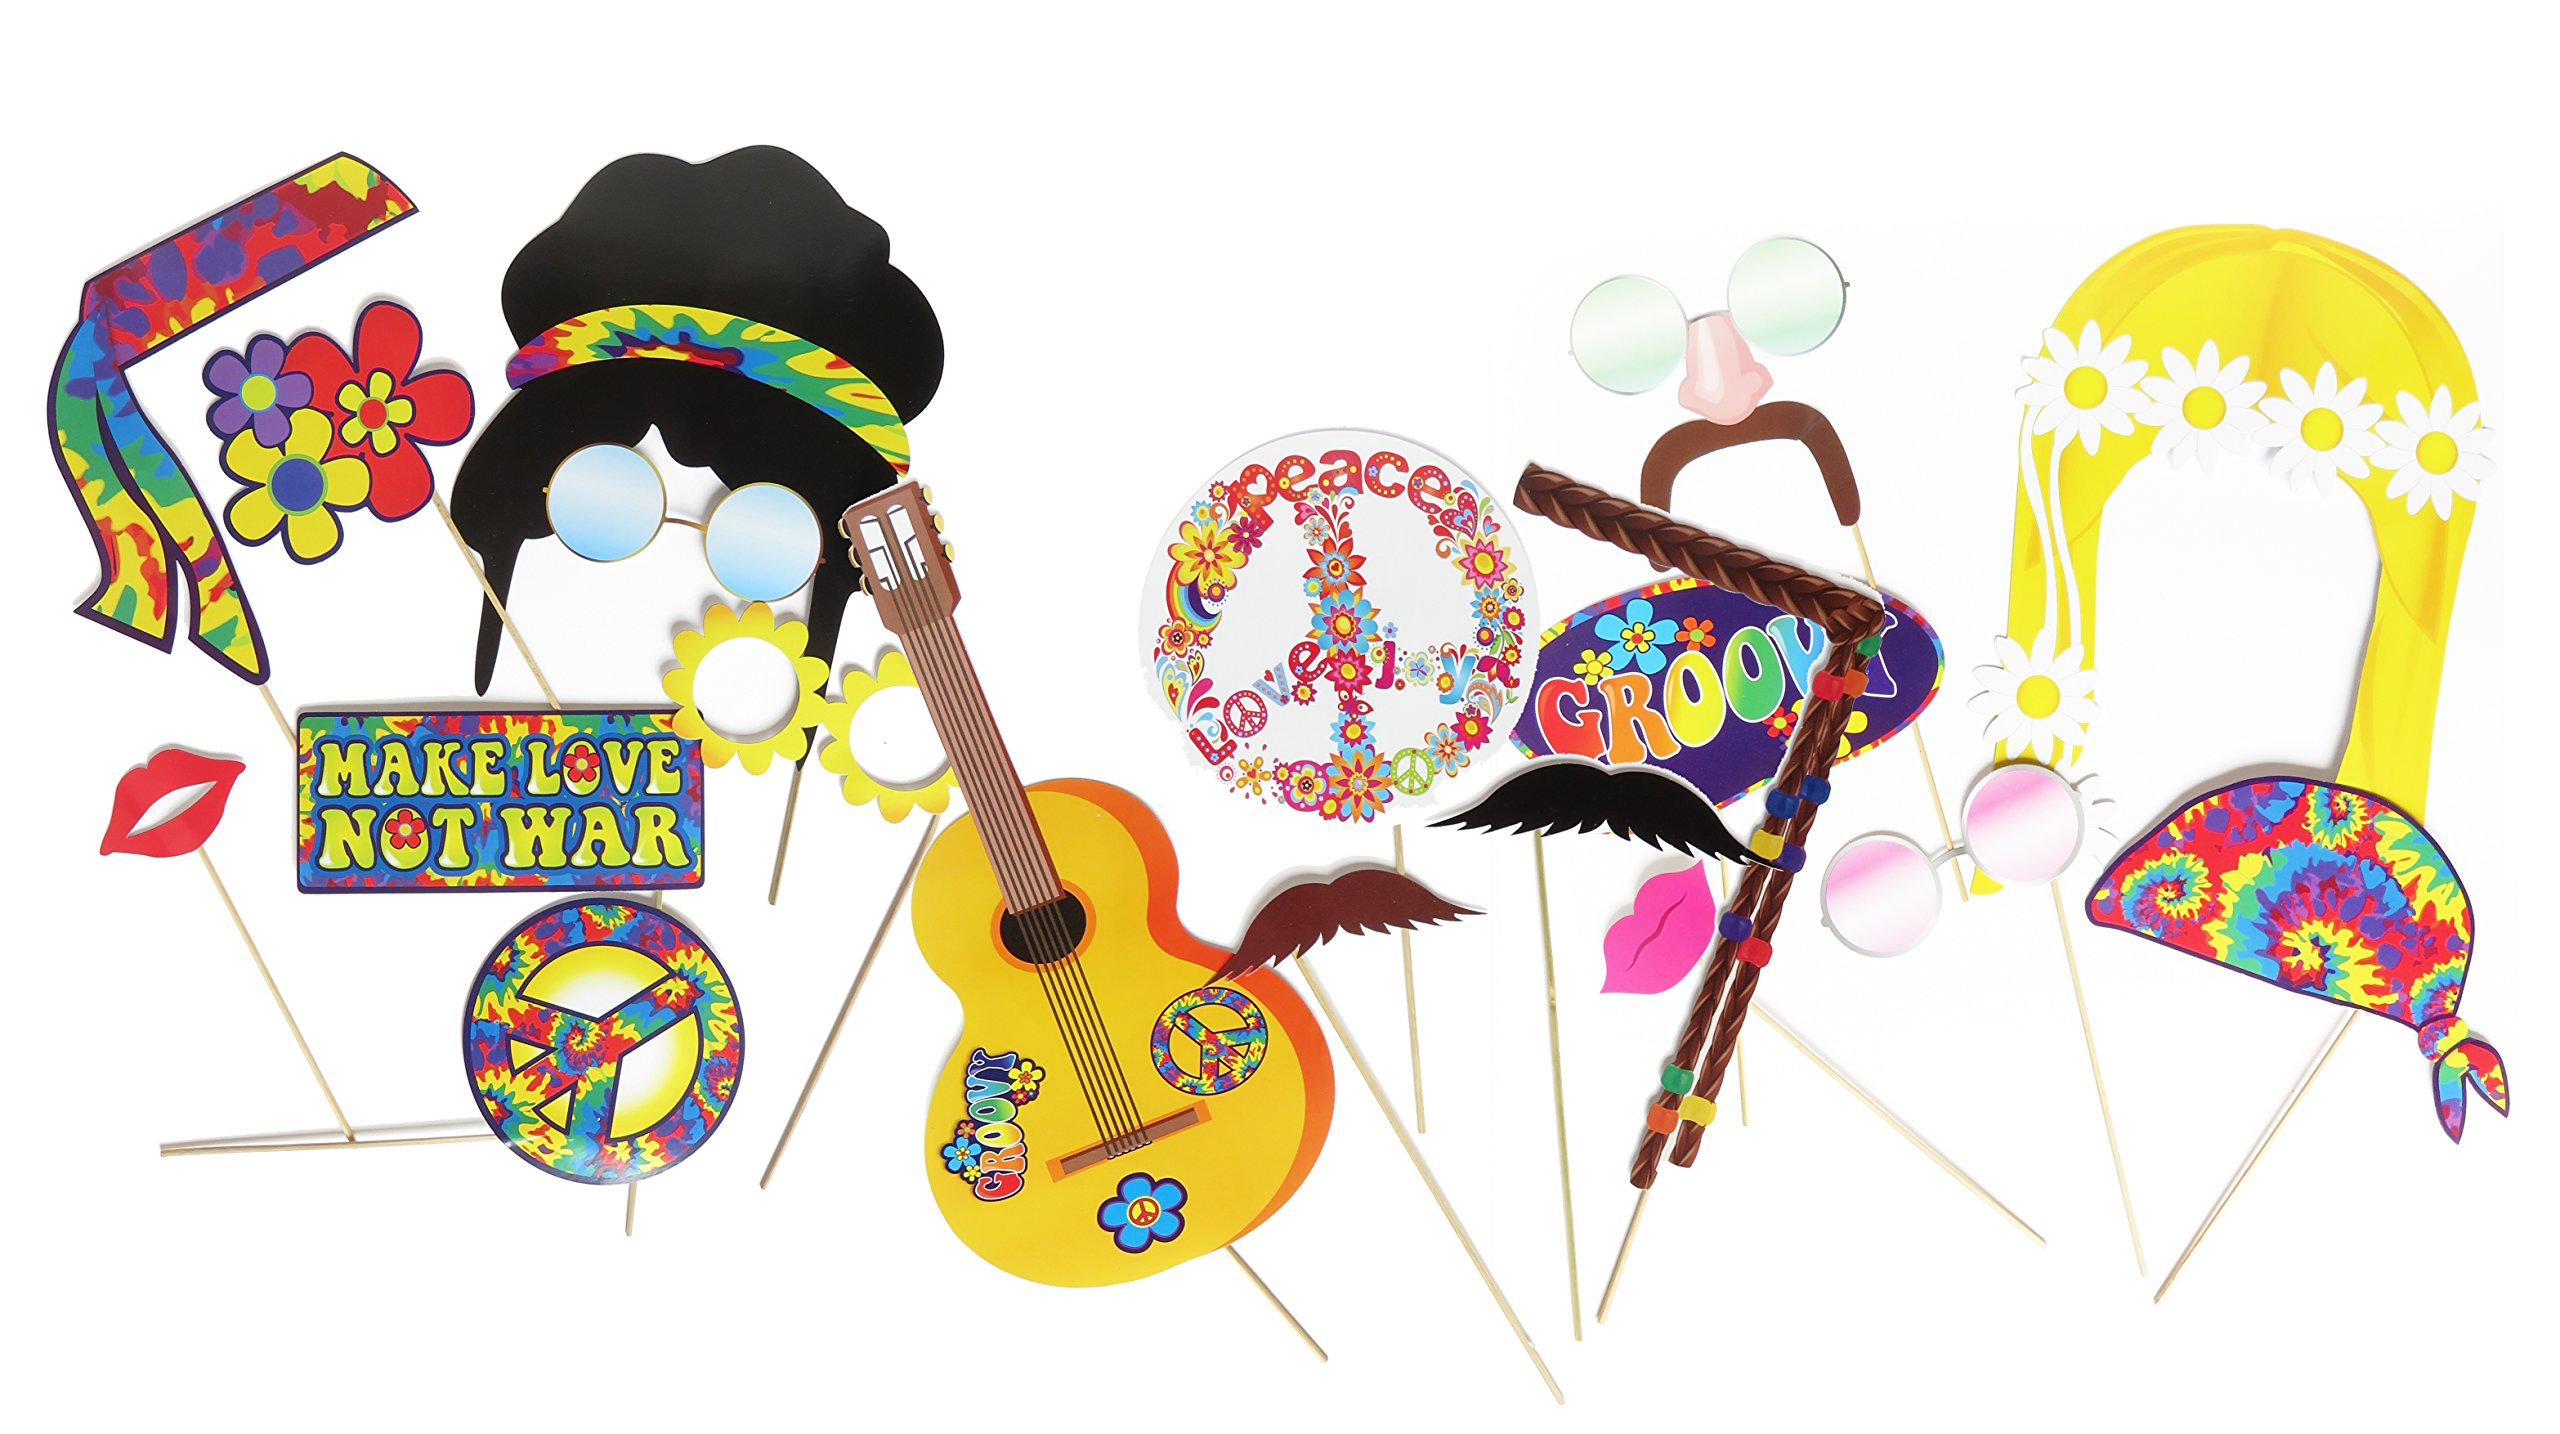 Hippie Decor Party Photo Booth Props by Express Novelties Online by Express Novelties Online